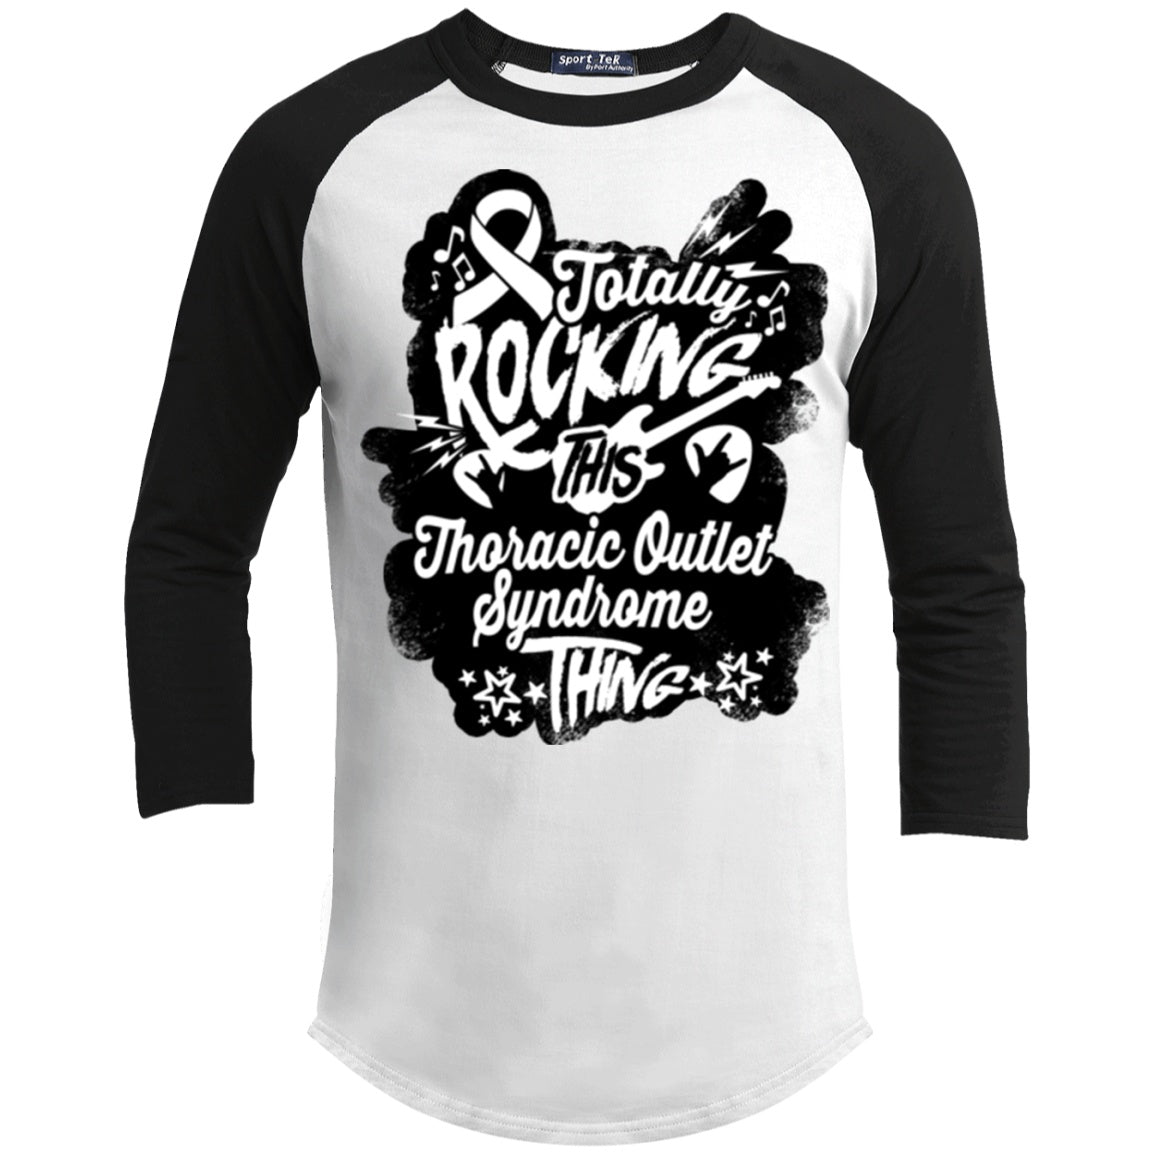 T-Shirts - Rocking Thoracic Outlet Syndrome Baseball Shirt